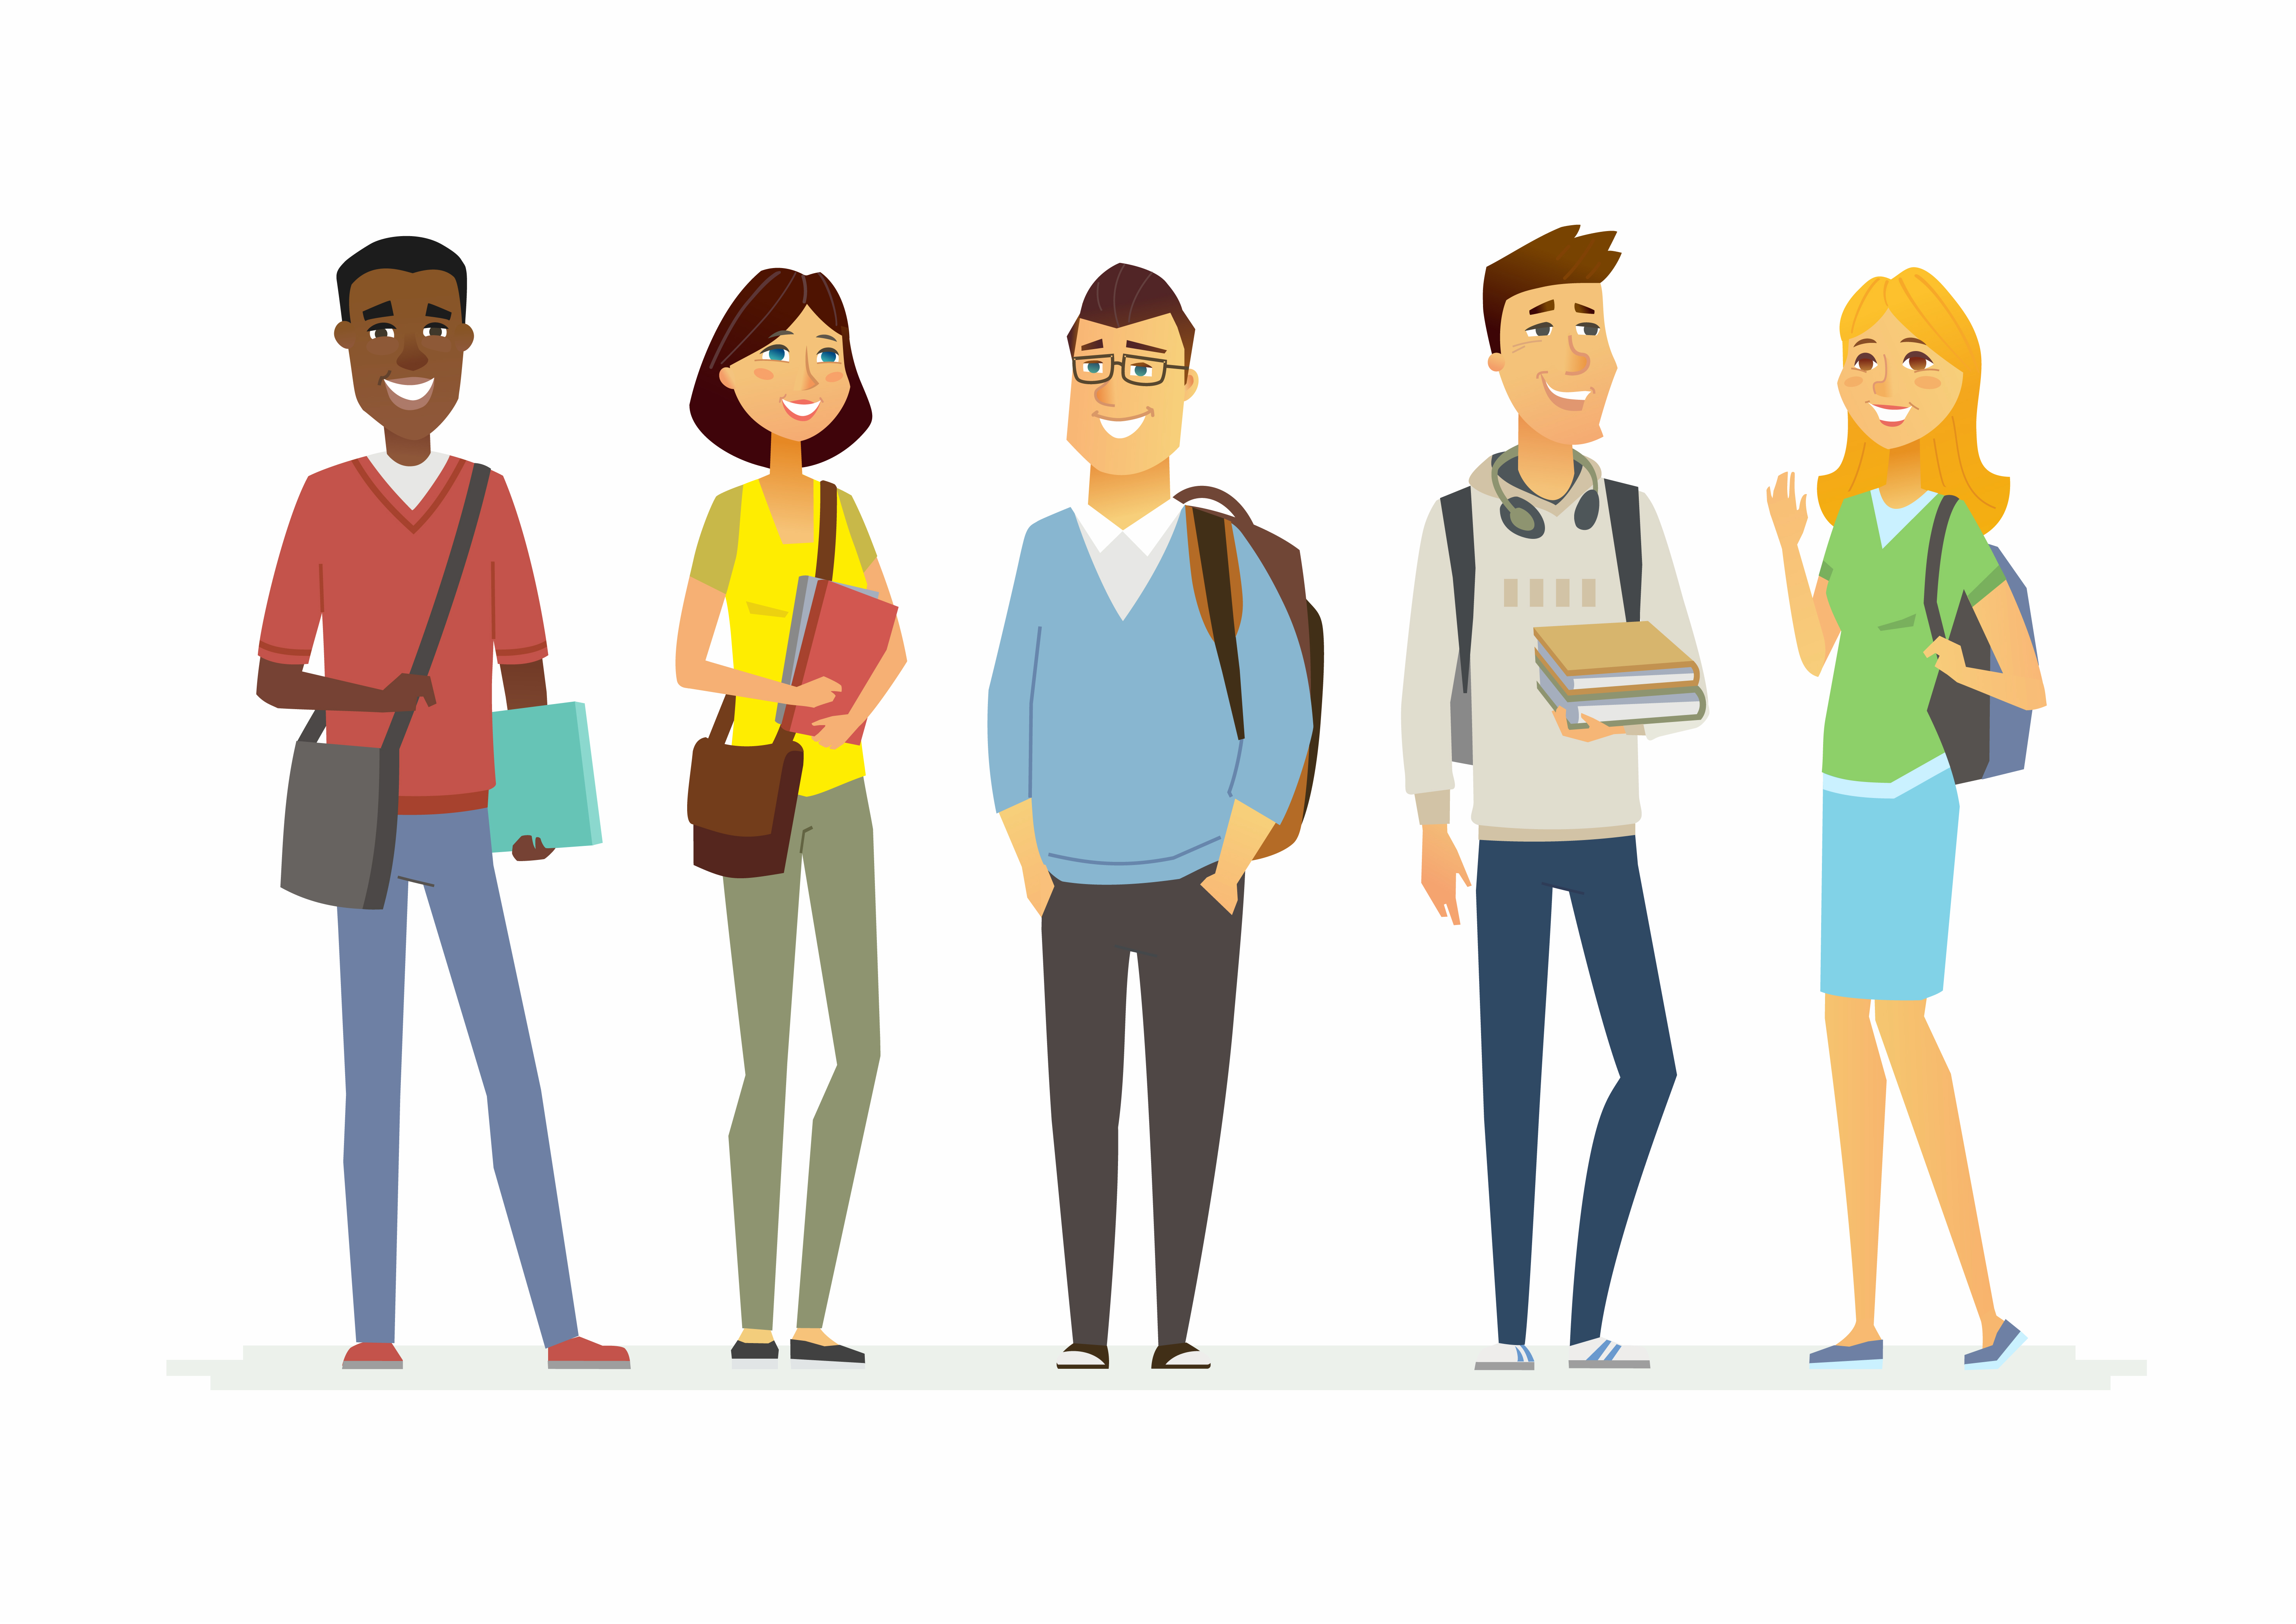 Happy senior school students - cartoon people characters isolated illustration. Smiling boys and girls with books and bags. Make a great presentation with these international cheerful teenagers